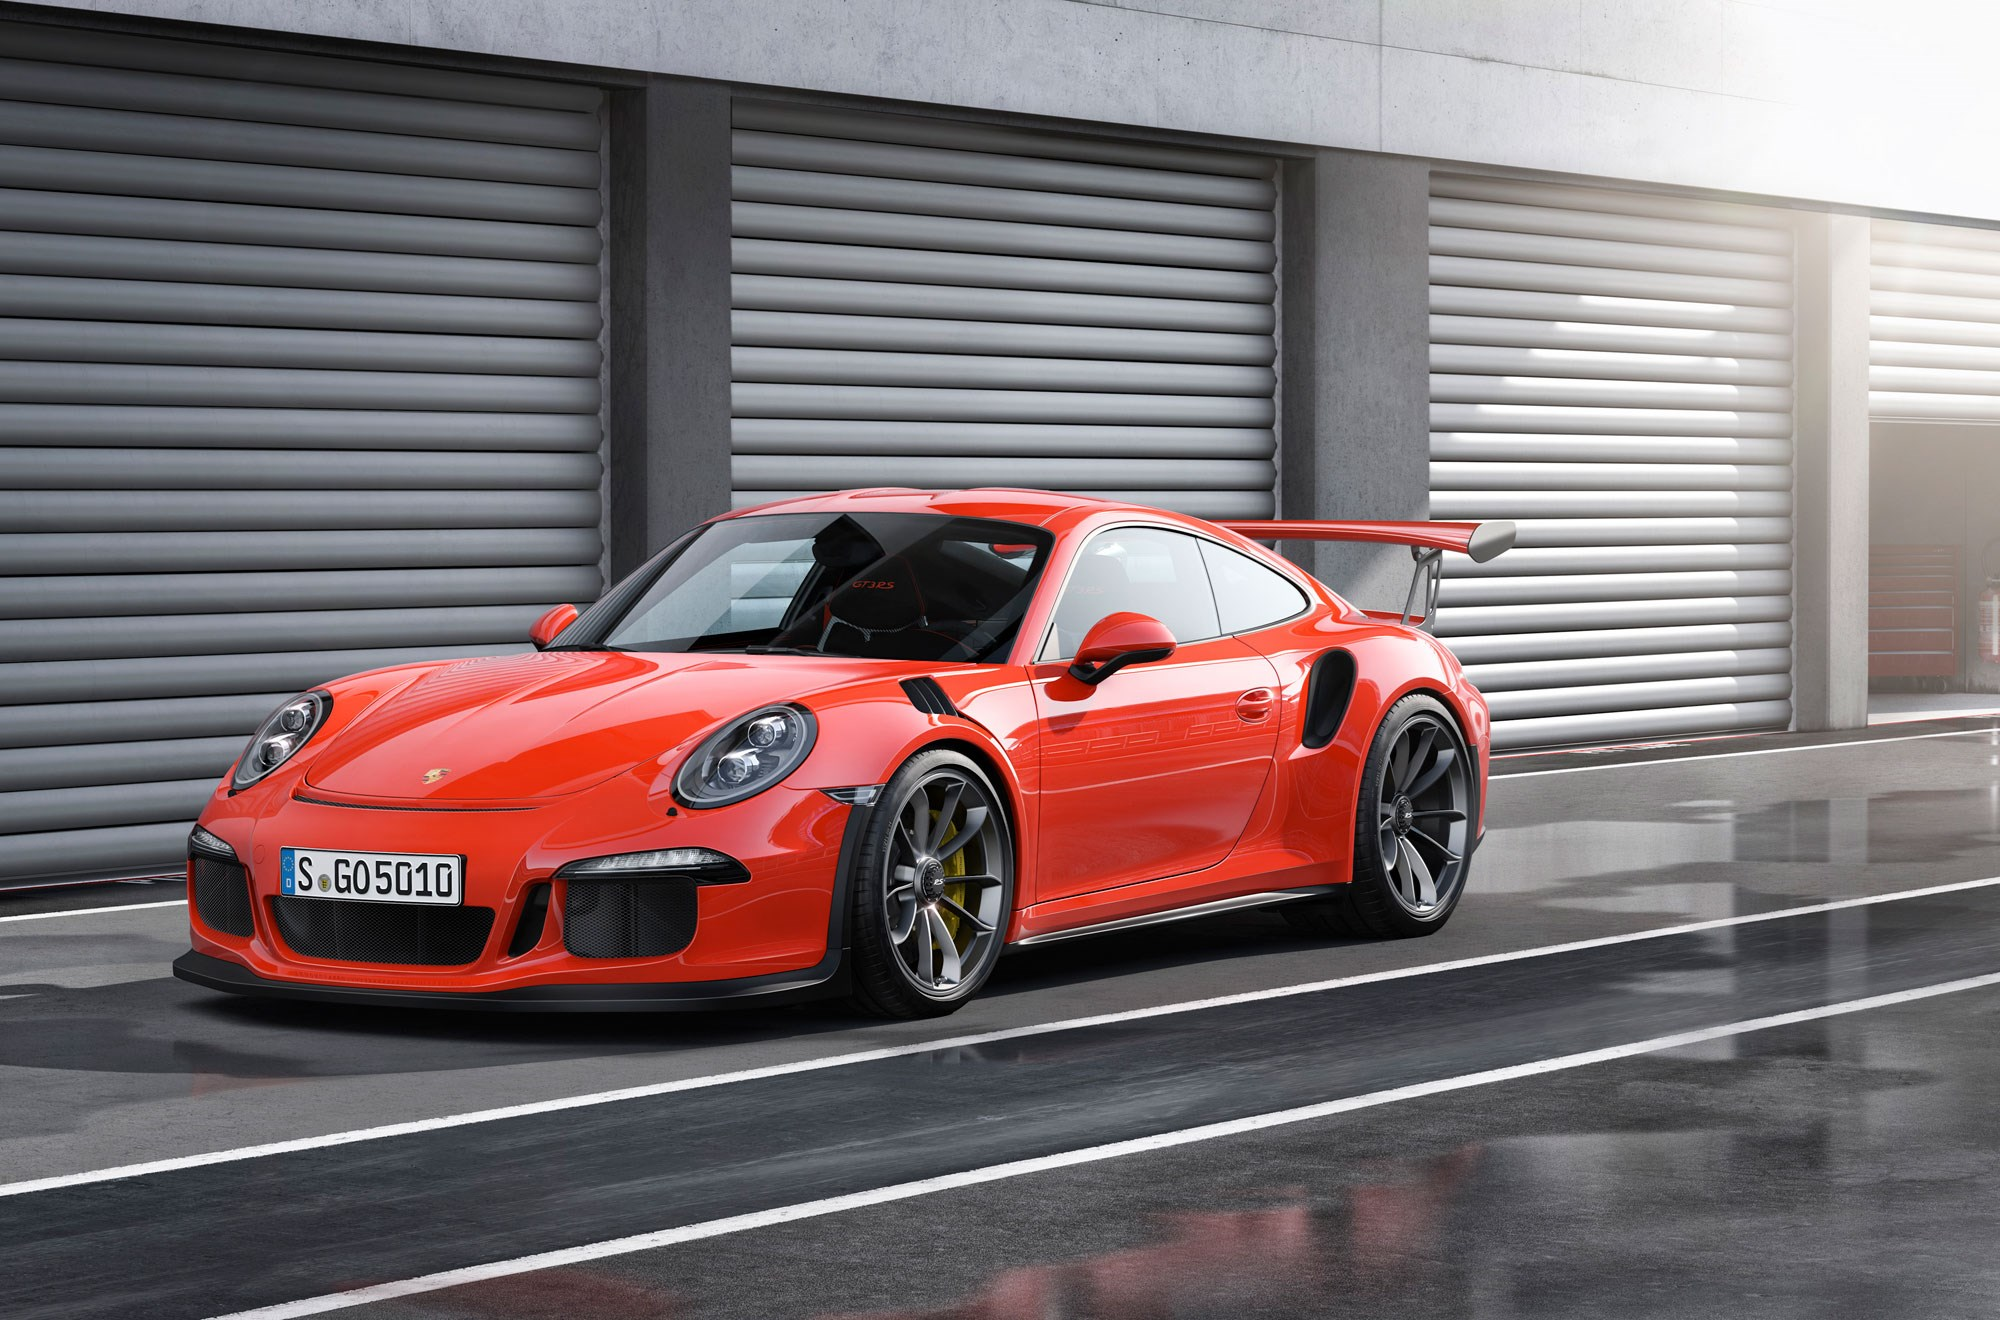 porsche 911 gt3 rs officially revealed finally by car. Black Bedroom Furniture Sets. Home Design Ideas